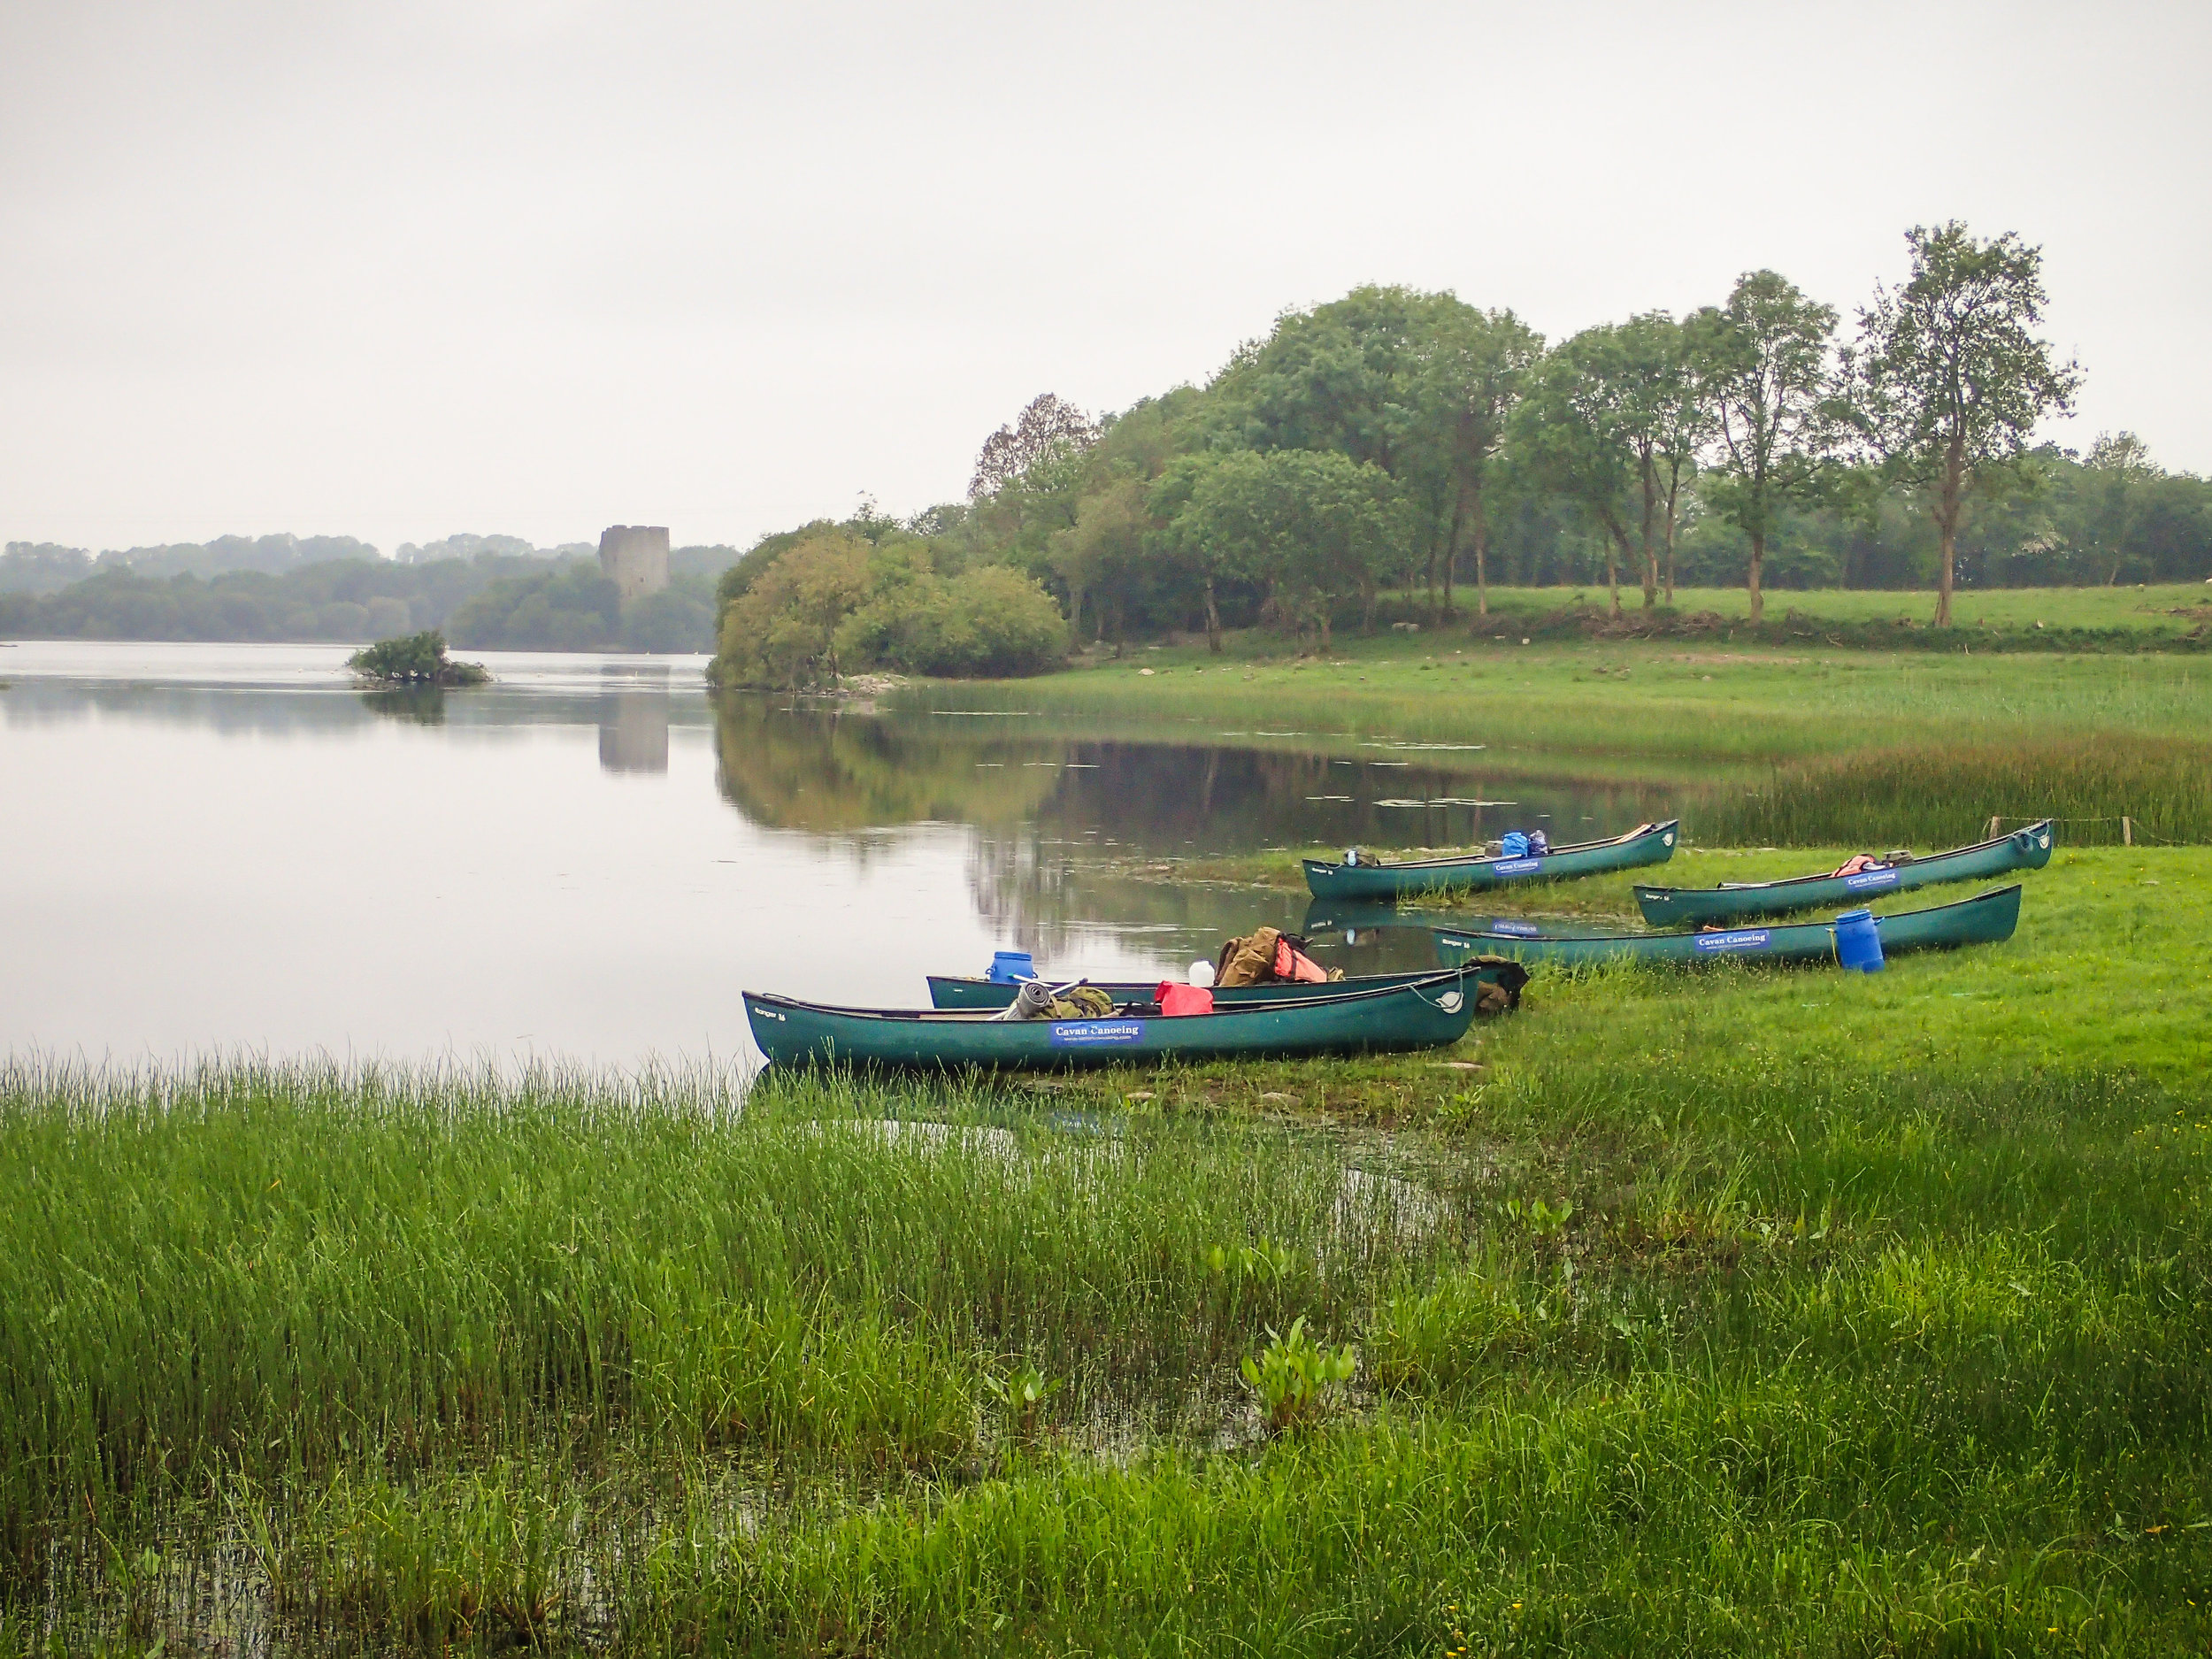 Canoe Hire - We have a range of 16ft Canadian Canoes available for rent. Whether just off for the day paddling or planning a camping or fishing expedition, we have got you covered. PRICE: €30 per adult - €15 per child (U17)Duration: 3.5hrs(Full Day): €50 per adult - €30 per childDuration: 6hrsOvernight: €60 per person